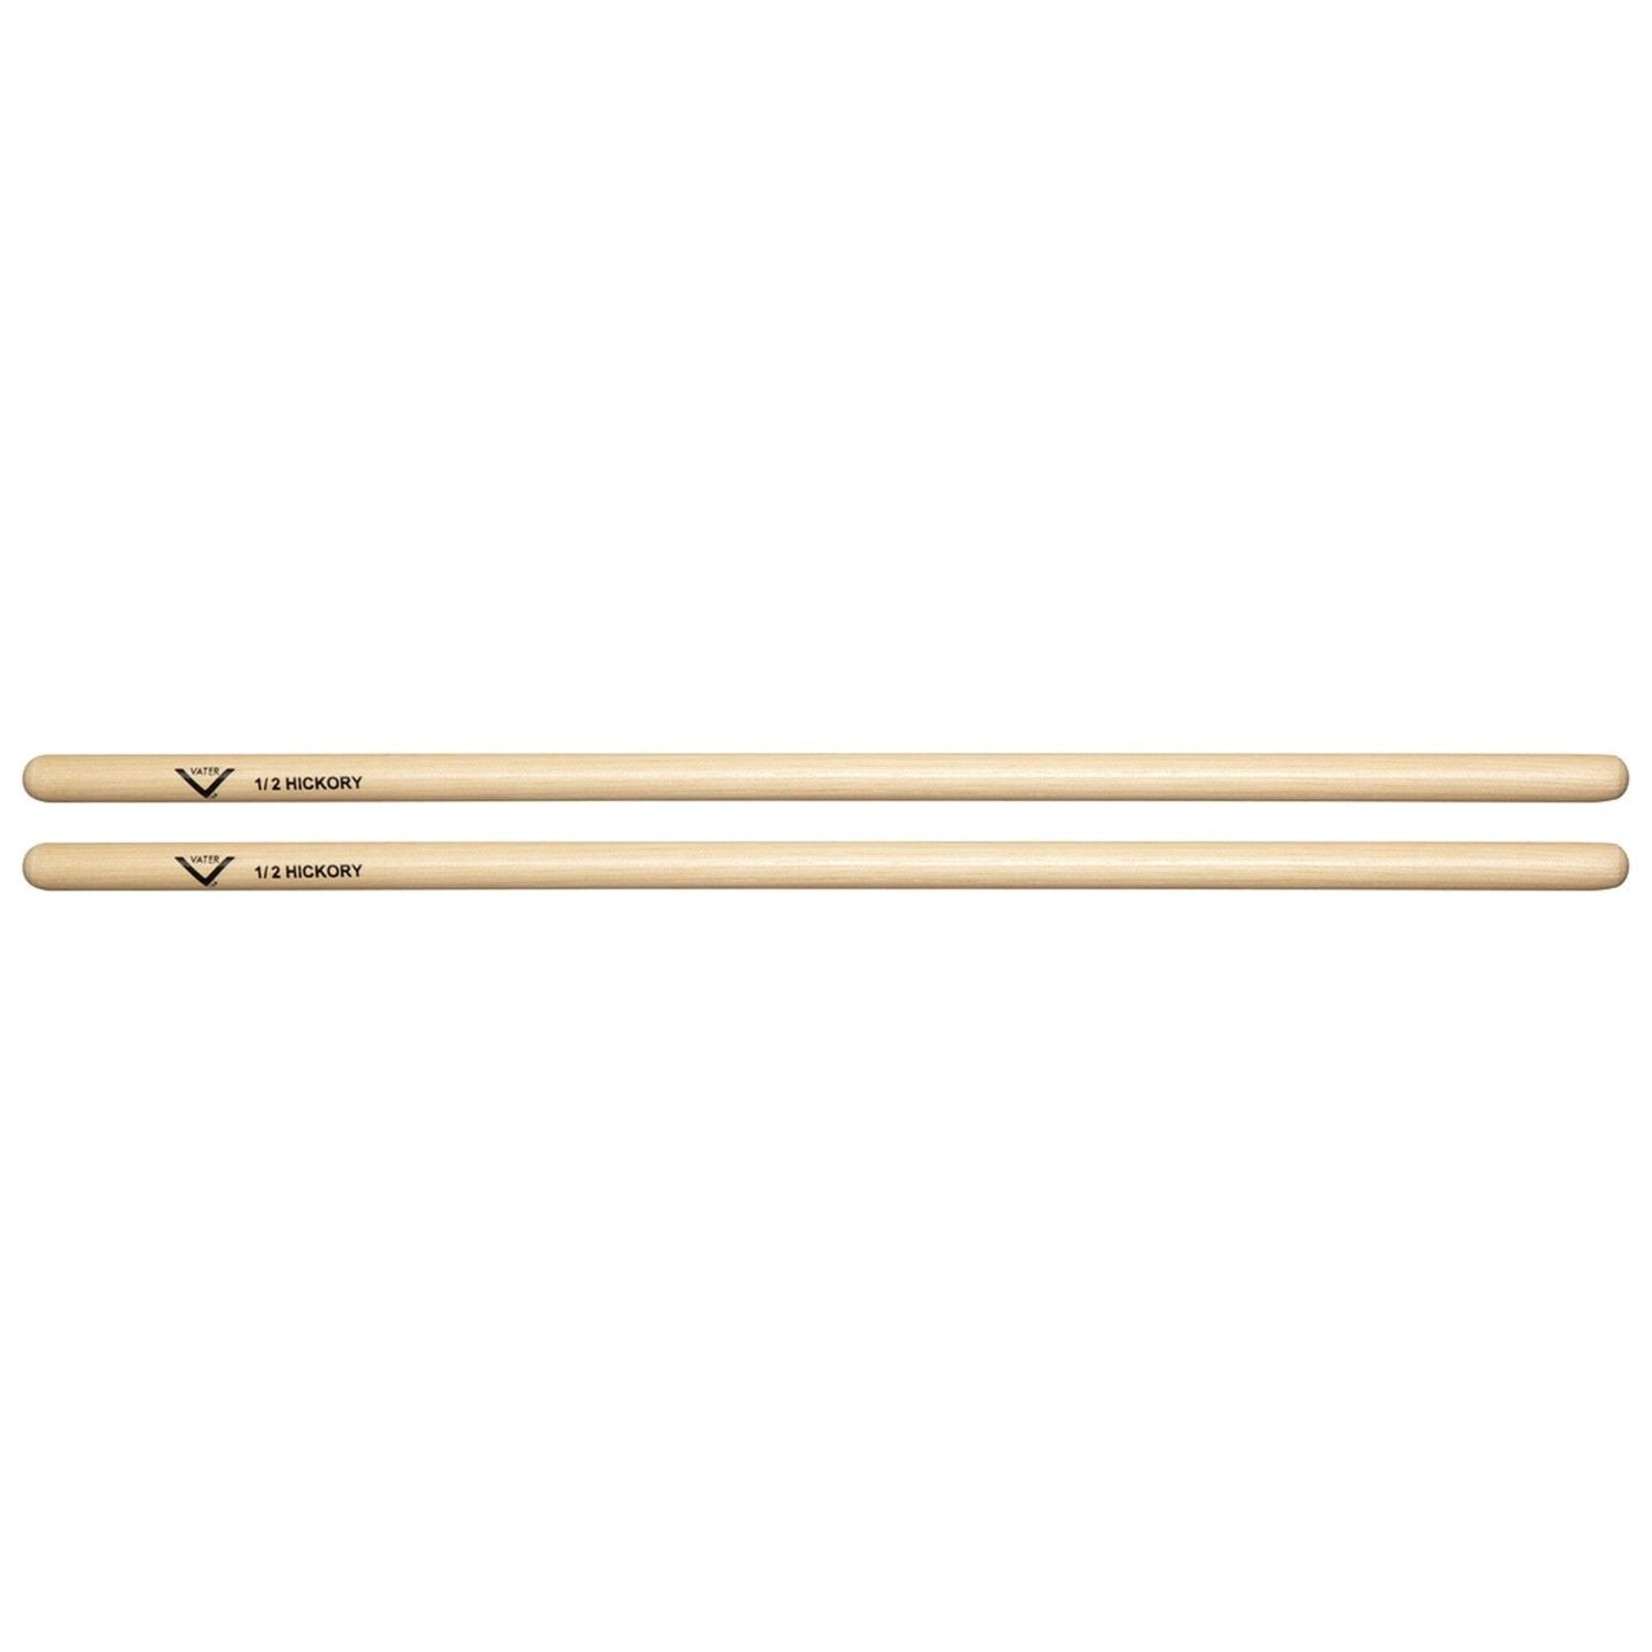 Vater Vater 1/2 Hickory Timbale